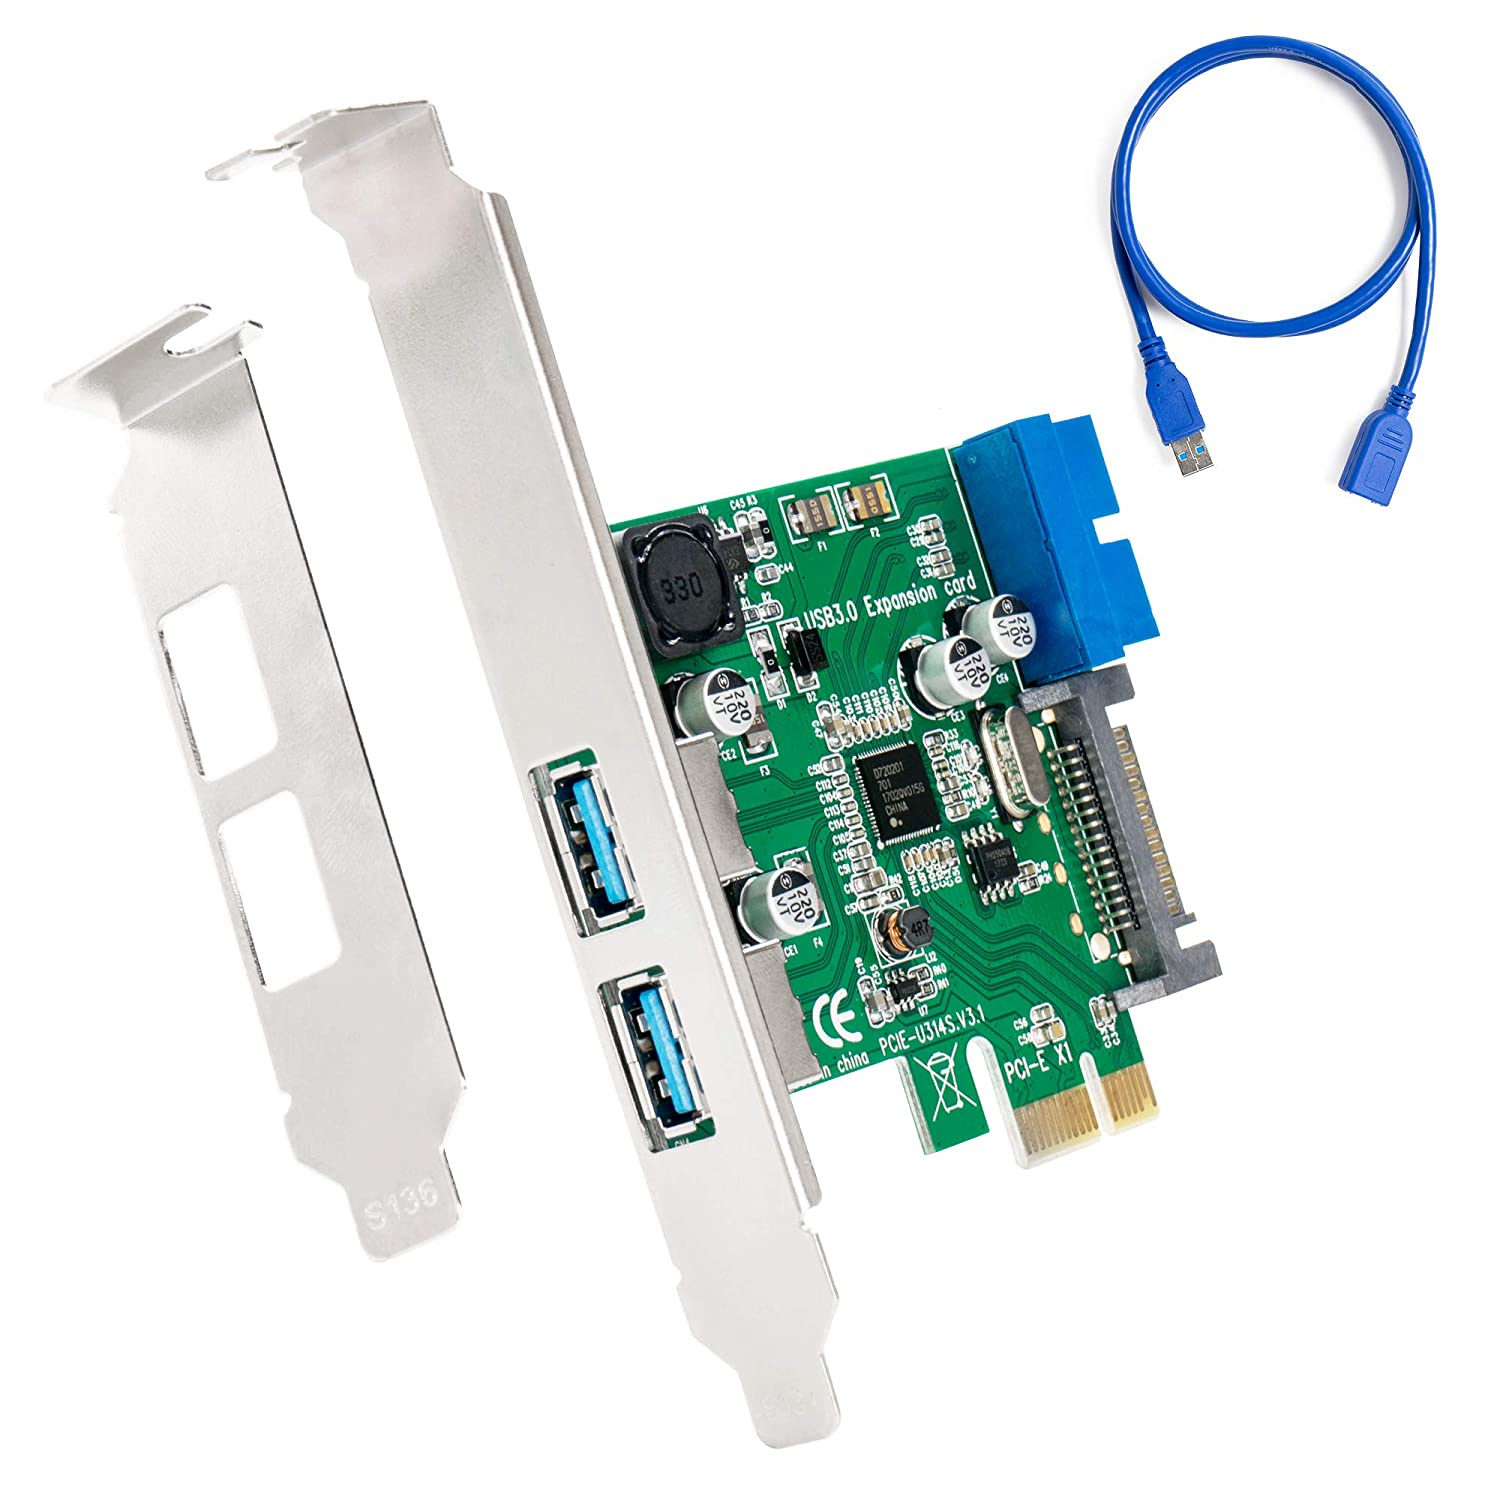 SHINESTAR USB 3.0 PCIe Expansion Card, 5 Port PCIe to USB 3.0 Adapter, 5 Gbps USB 3.0 PCI Express Controller Hub for Desktop PC, Support Windows XP / 7/8 / 10